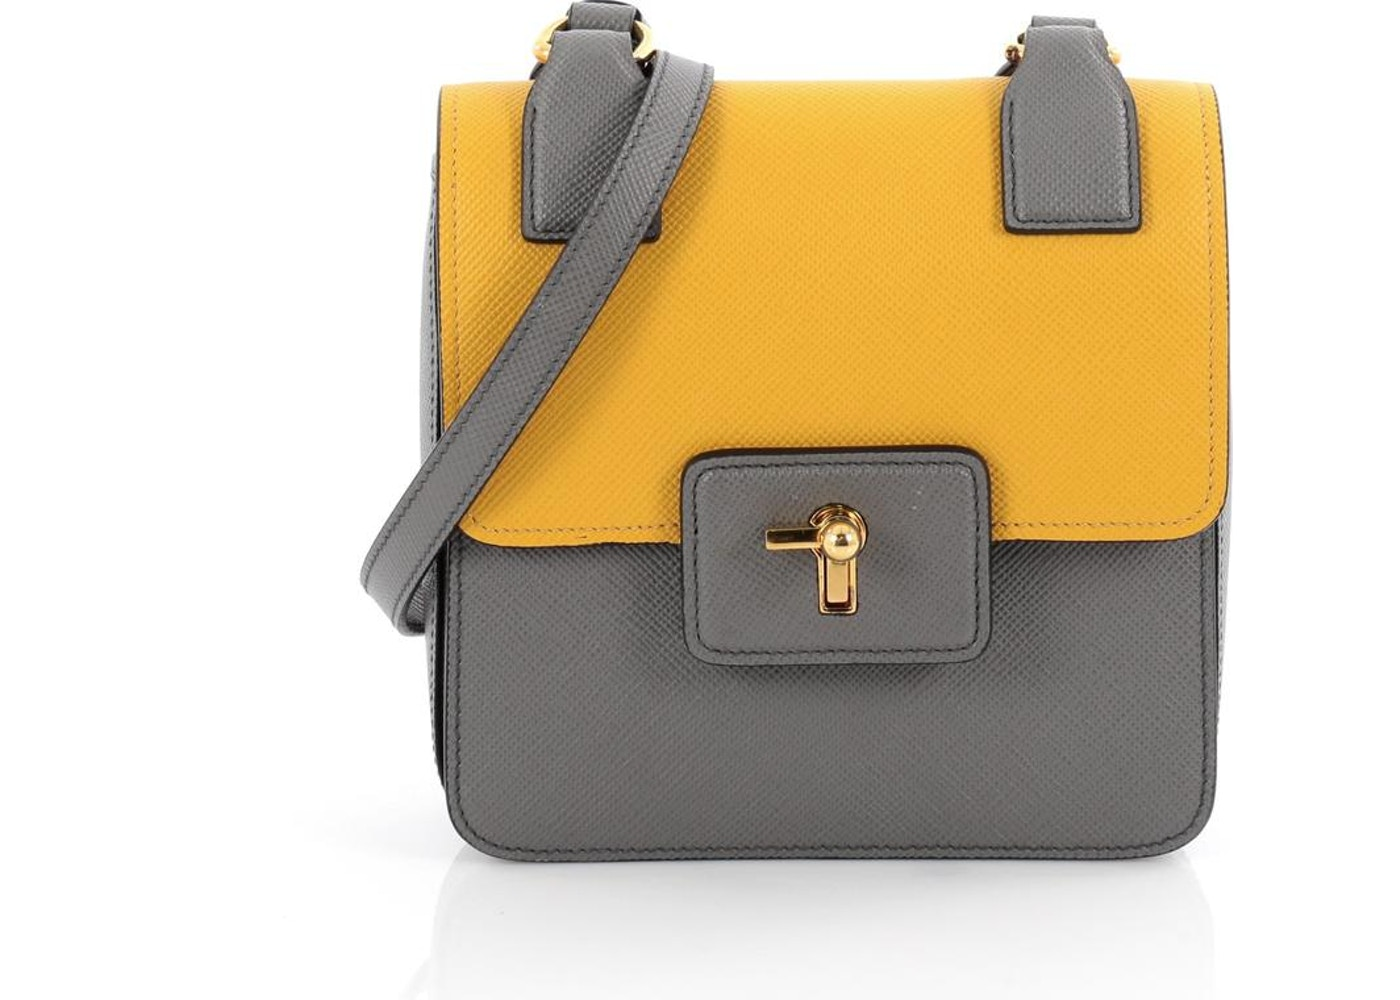 1bf3317bb3ad Prada Turnlock Tote Saffiano Small Marmo Grey /Soleil Yellow. Saffiano Small  Marmo Grey /Soleil Yellow